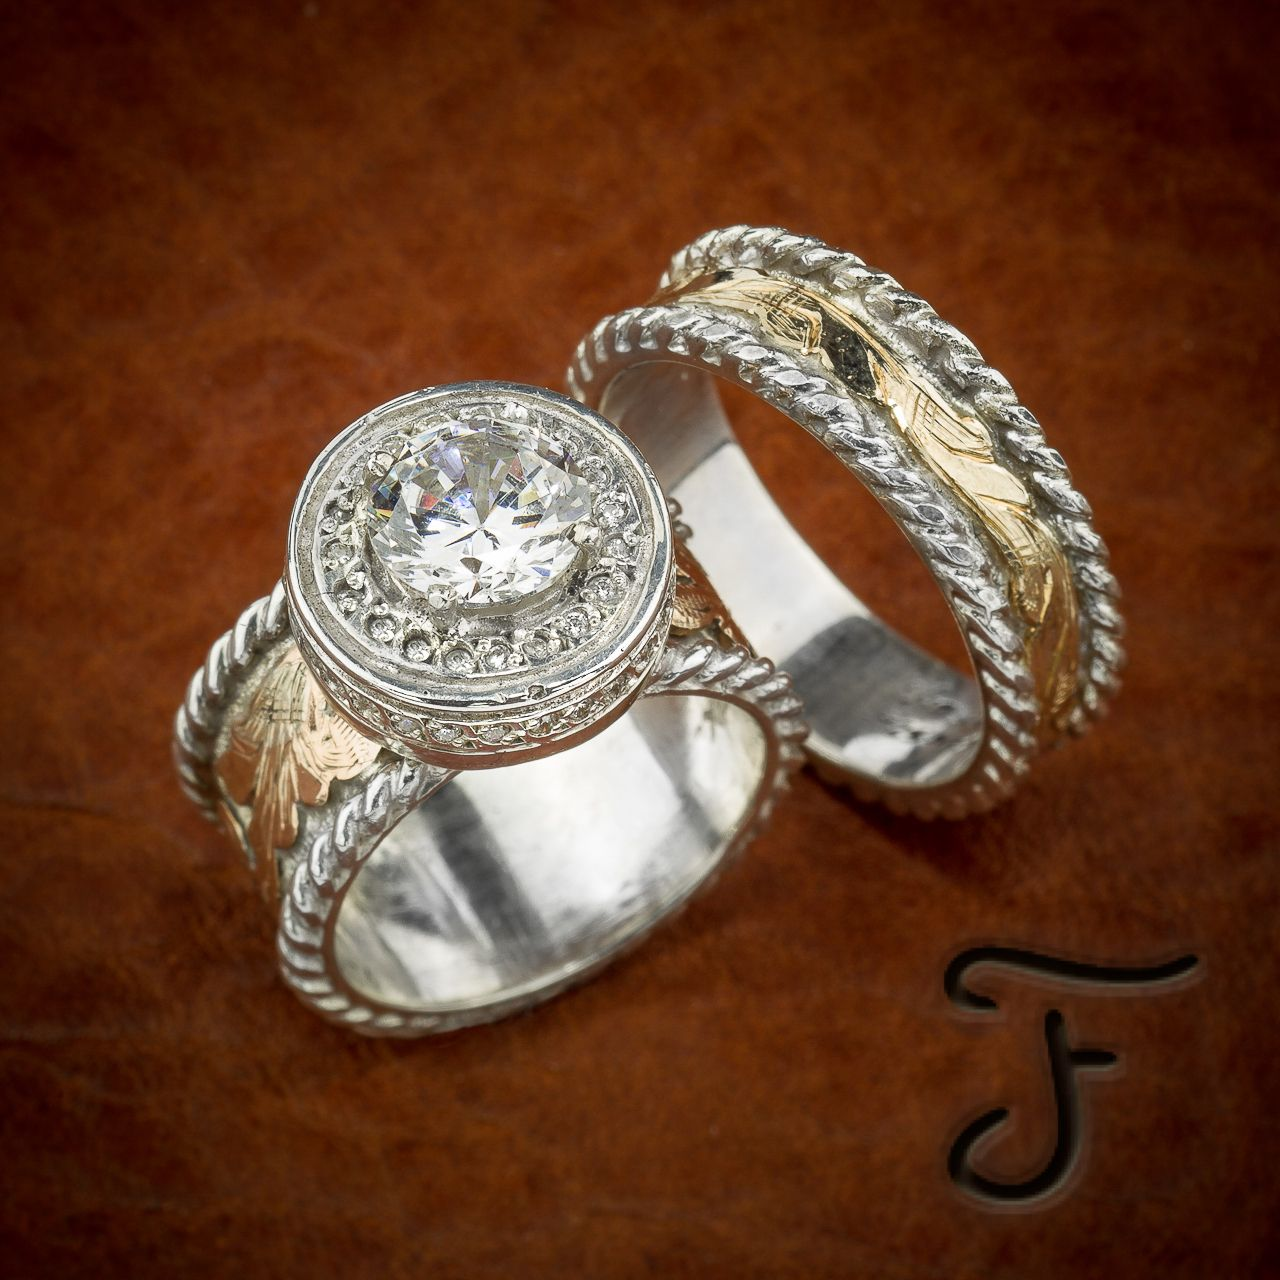 R13s And R7s Fanning Jewelry: Western Wedding Rings Marriage At Websimilar.org